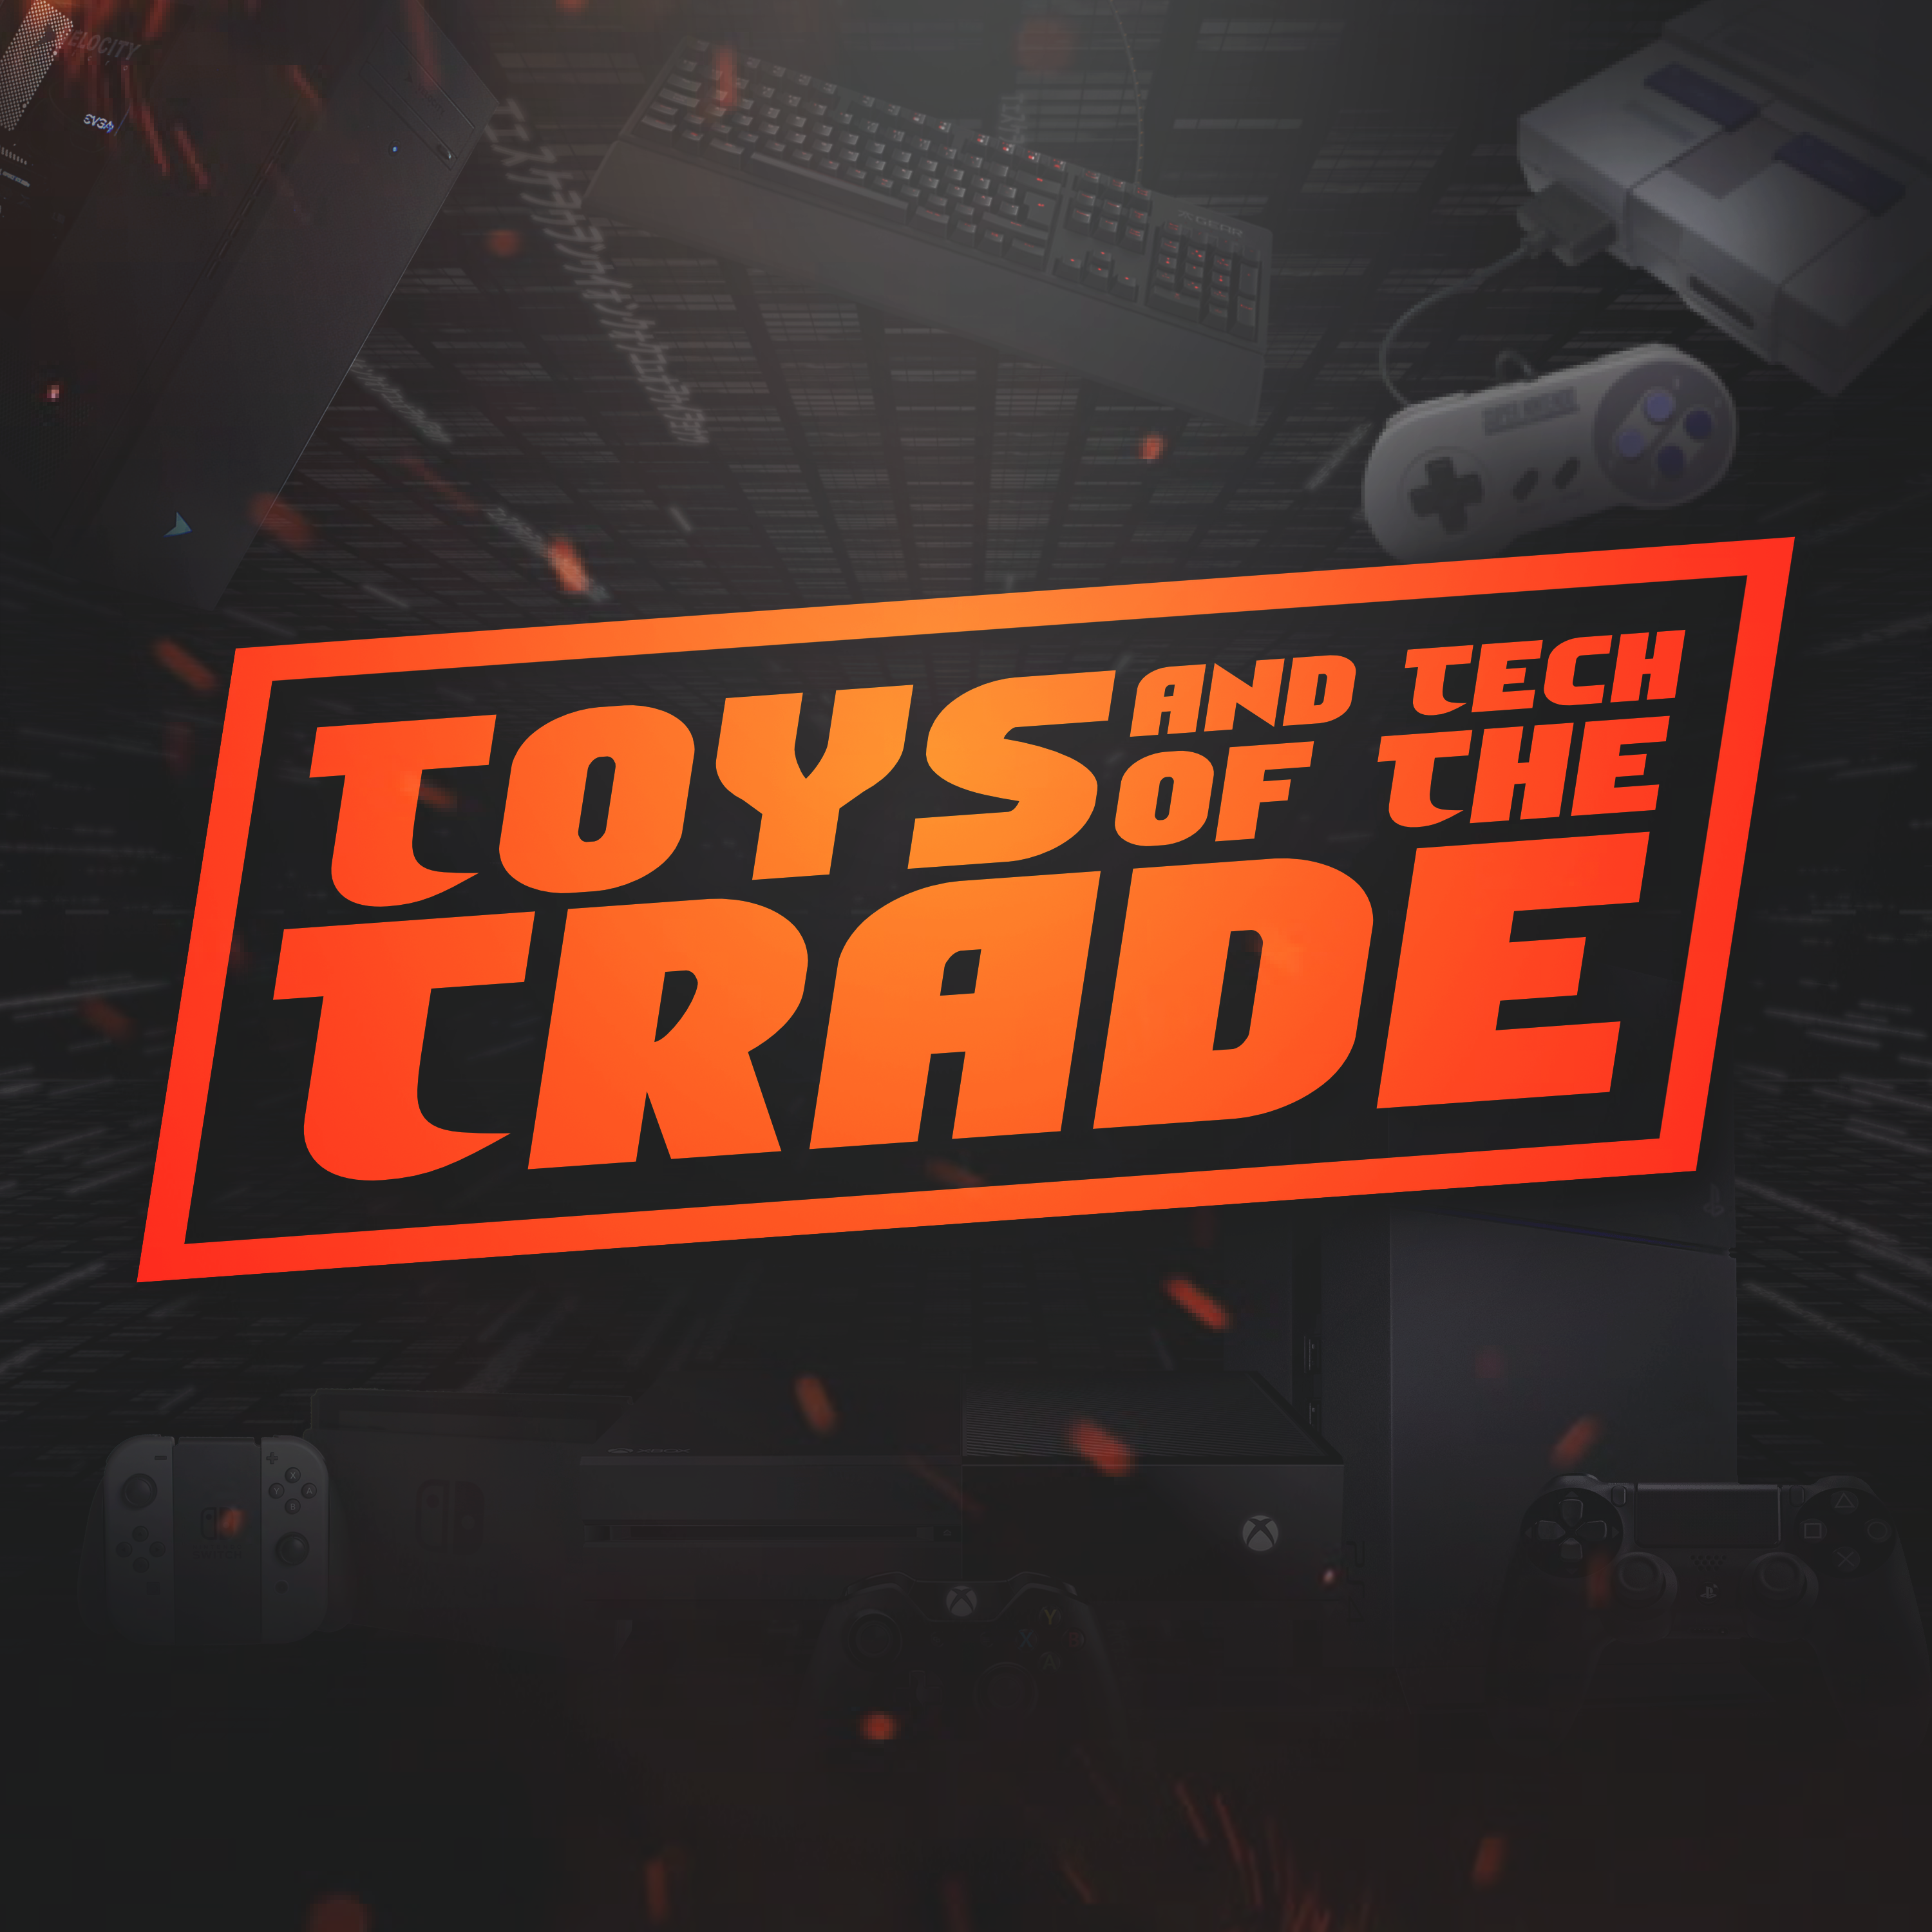 Logo: Toys and Tech of the Trade